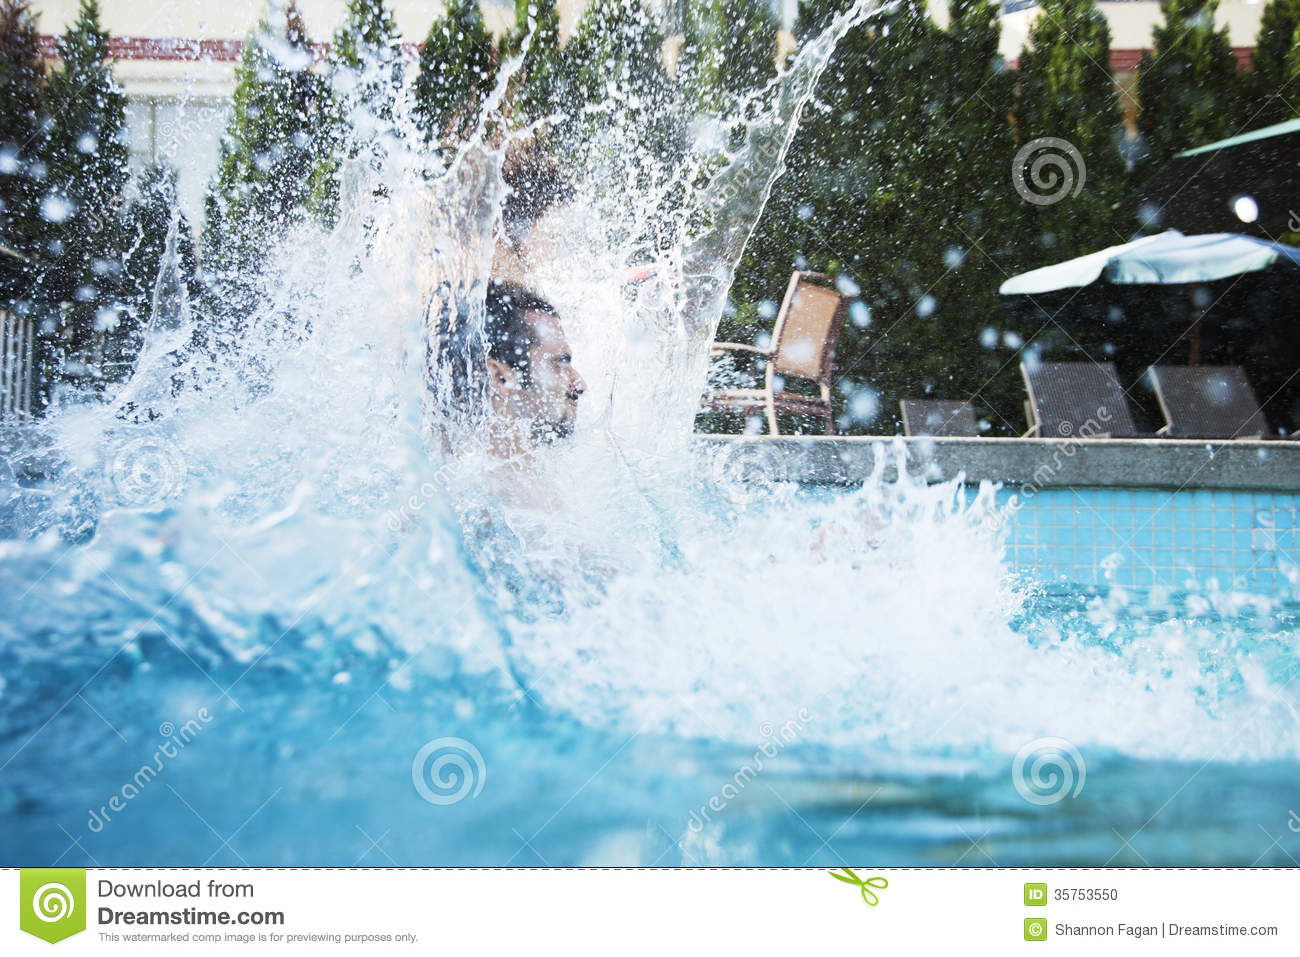 Pool Splash Cannonball young man jumping into a pool with water splashing all around him